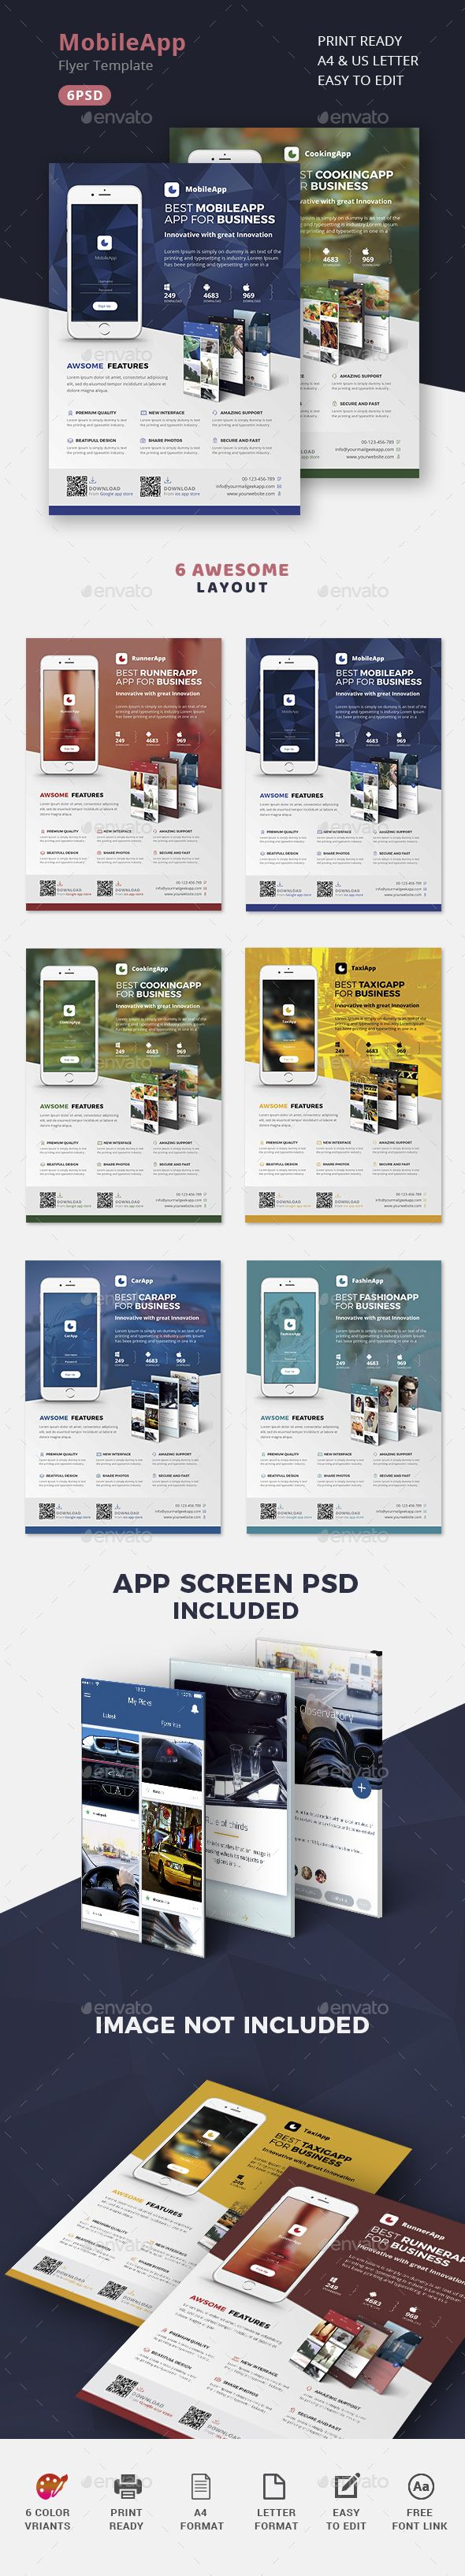 Mobile App Promotion Flyers Template PSD